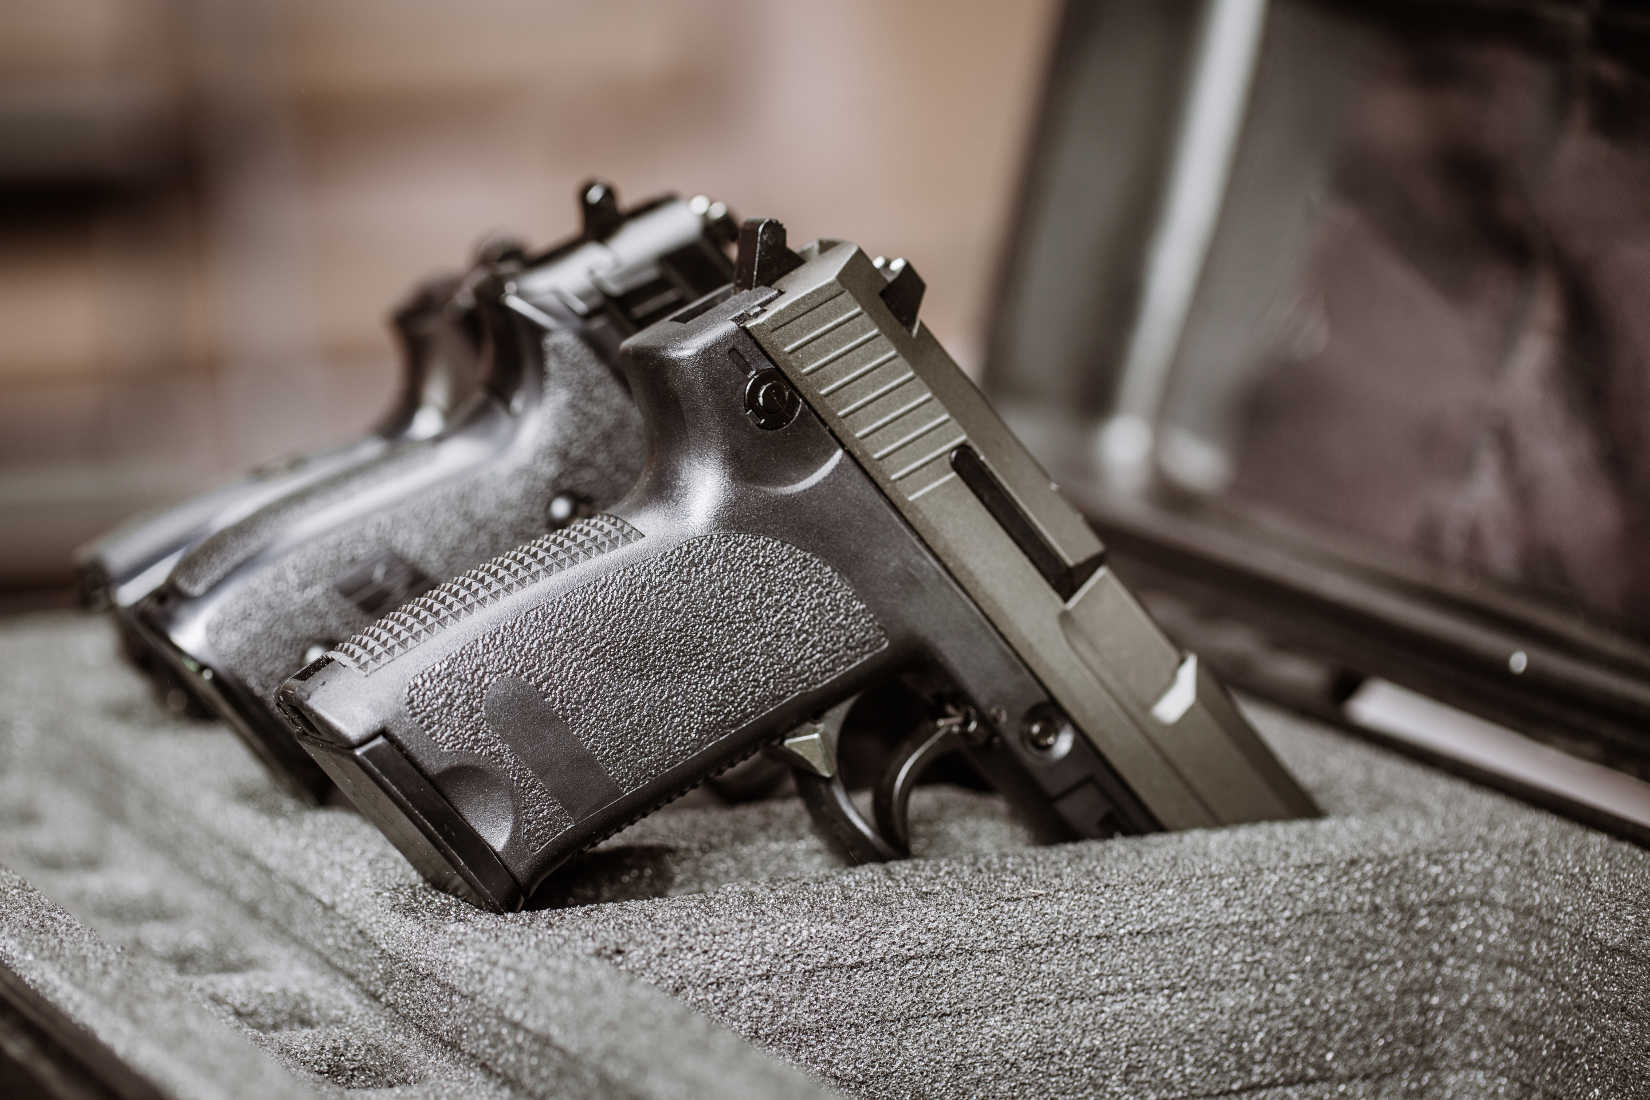 Democrats in Michigan Introduce Gun Control Measures That Trample the Constitution